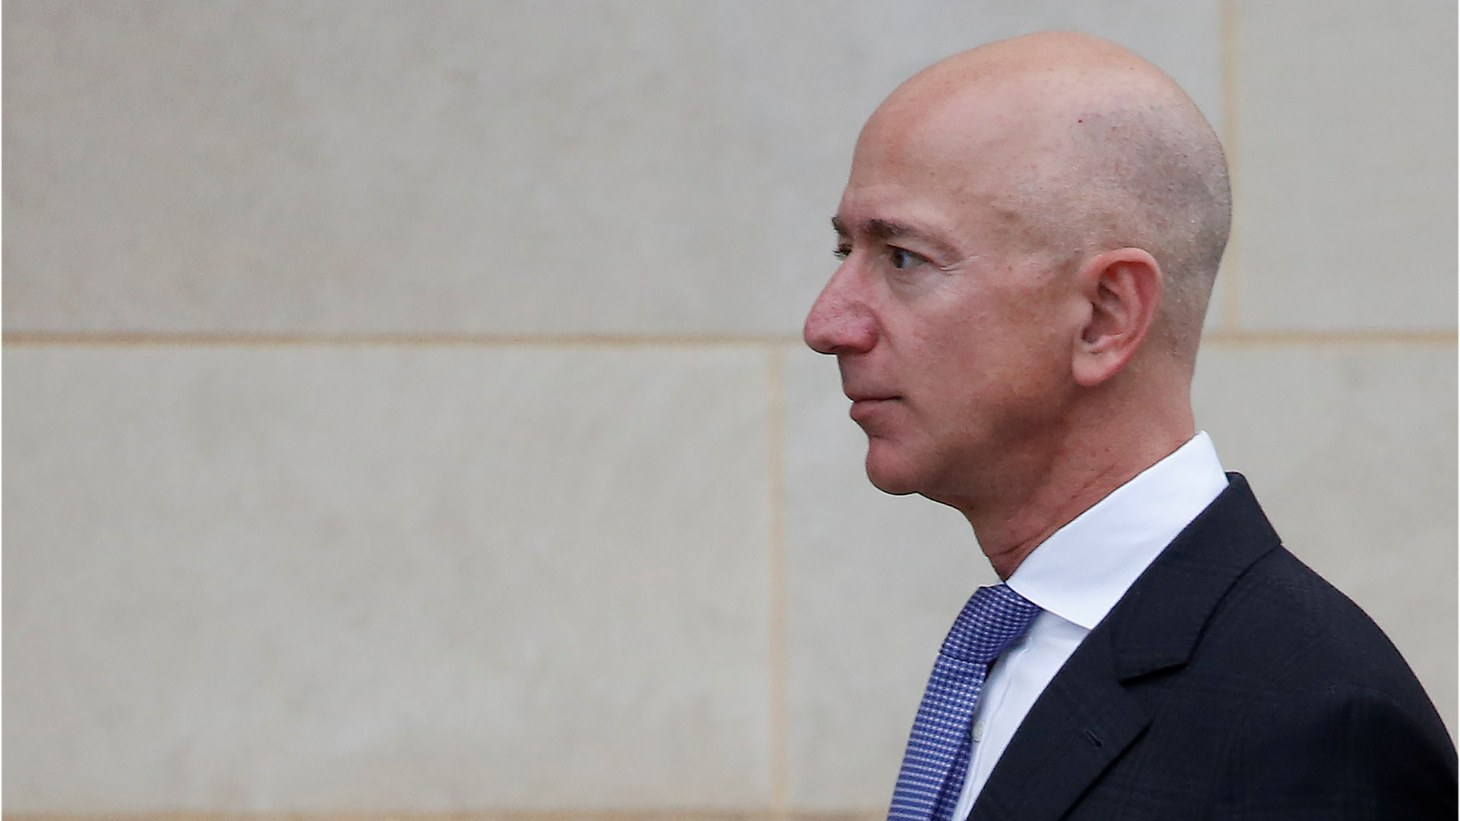 Amazon founder Jeff Bezos arrives for the memorial service of U.S. Senator John McCain (R-AZ) at the National Cathedral in Washington, U.S., September 1st, 2018.